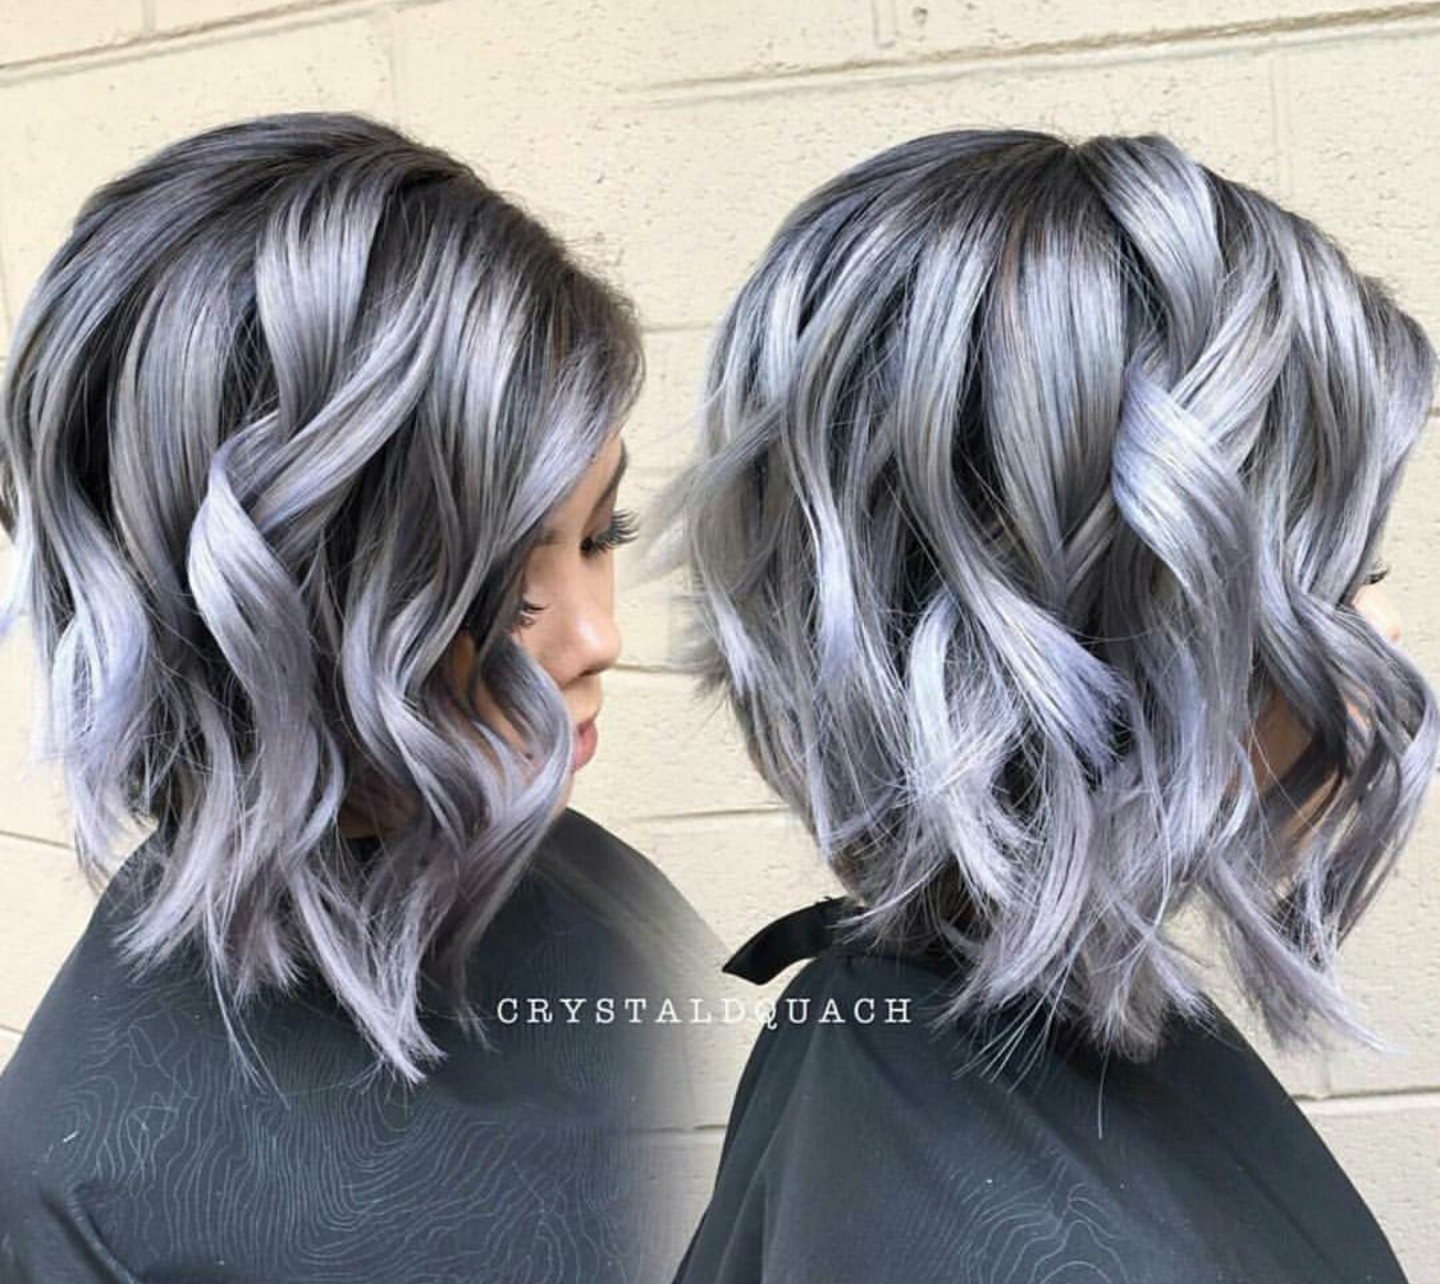 Formulas pricing how to behindthechair haircolor for Color gray or grey